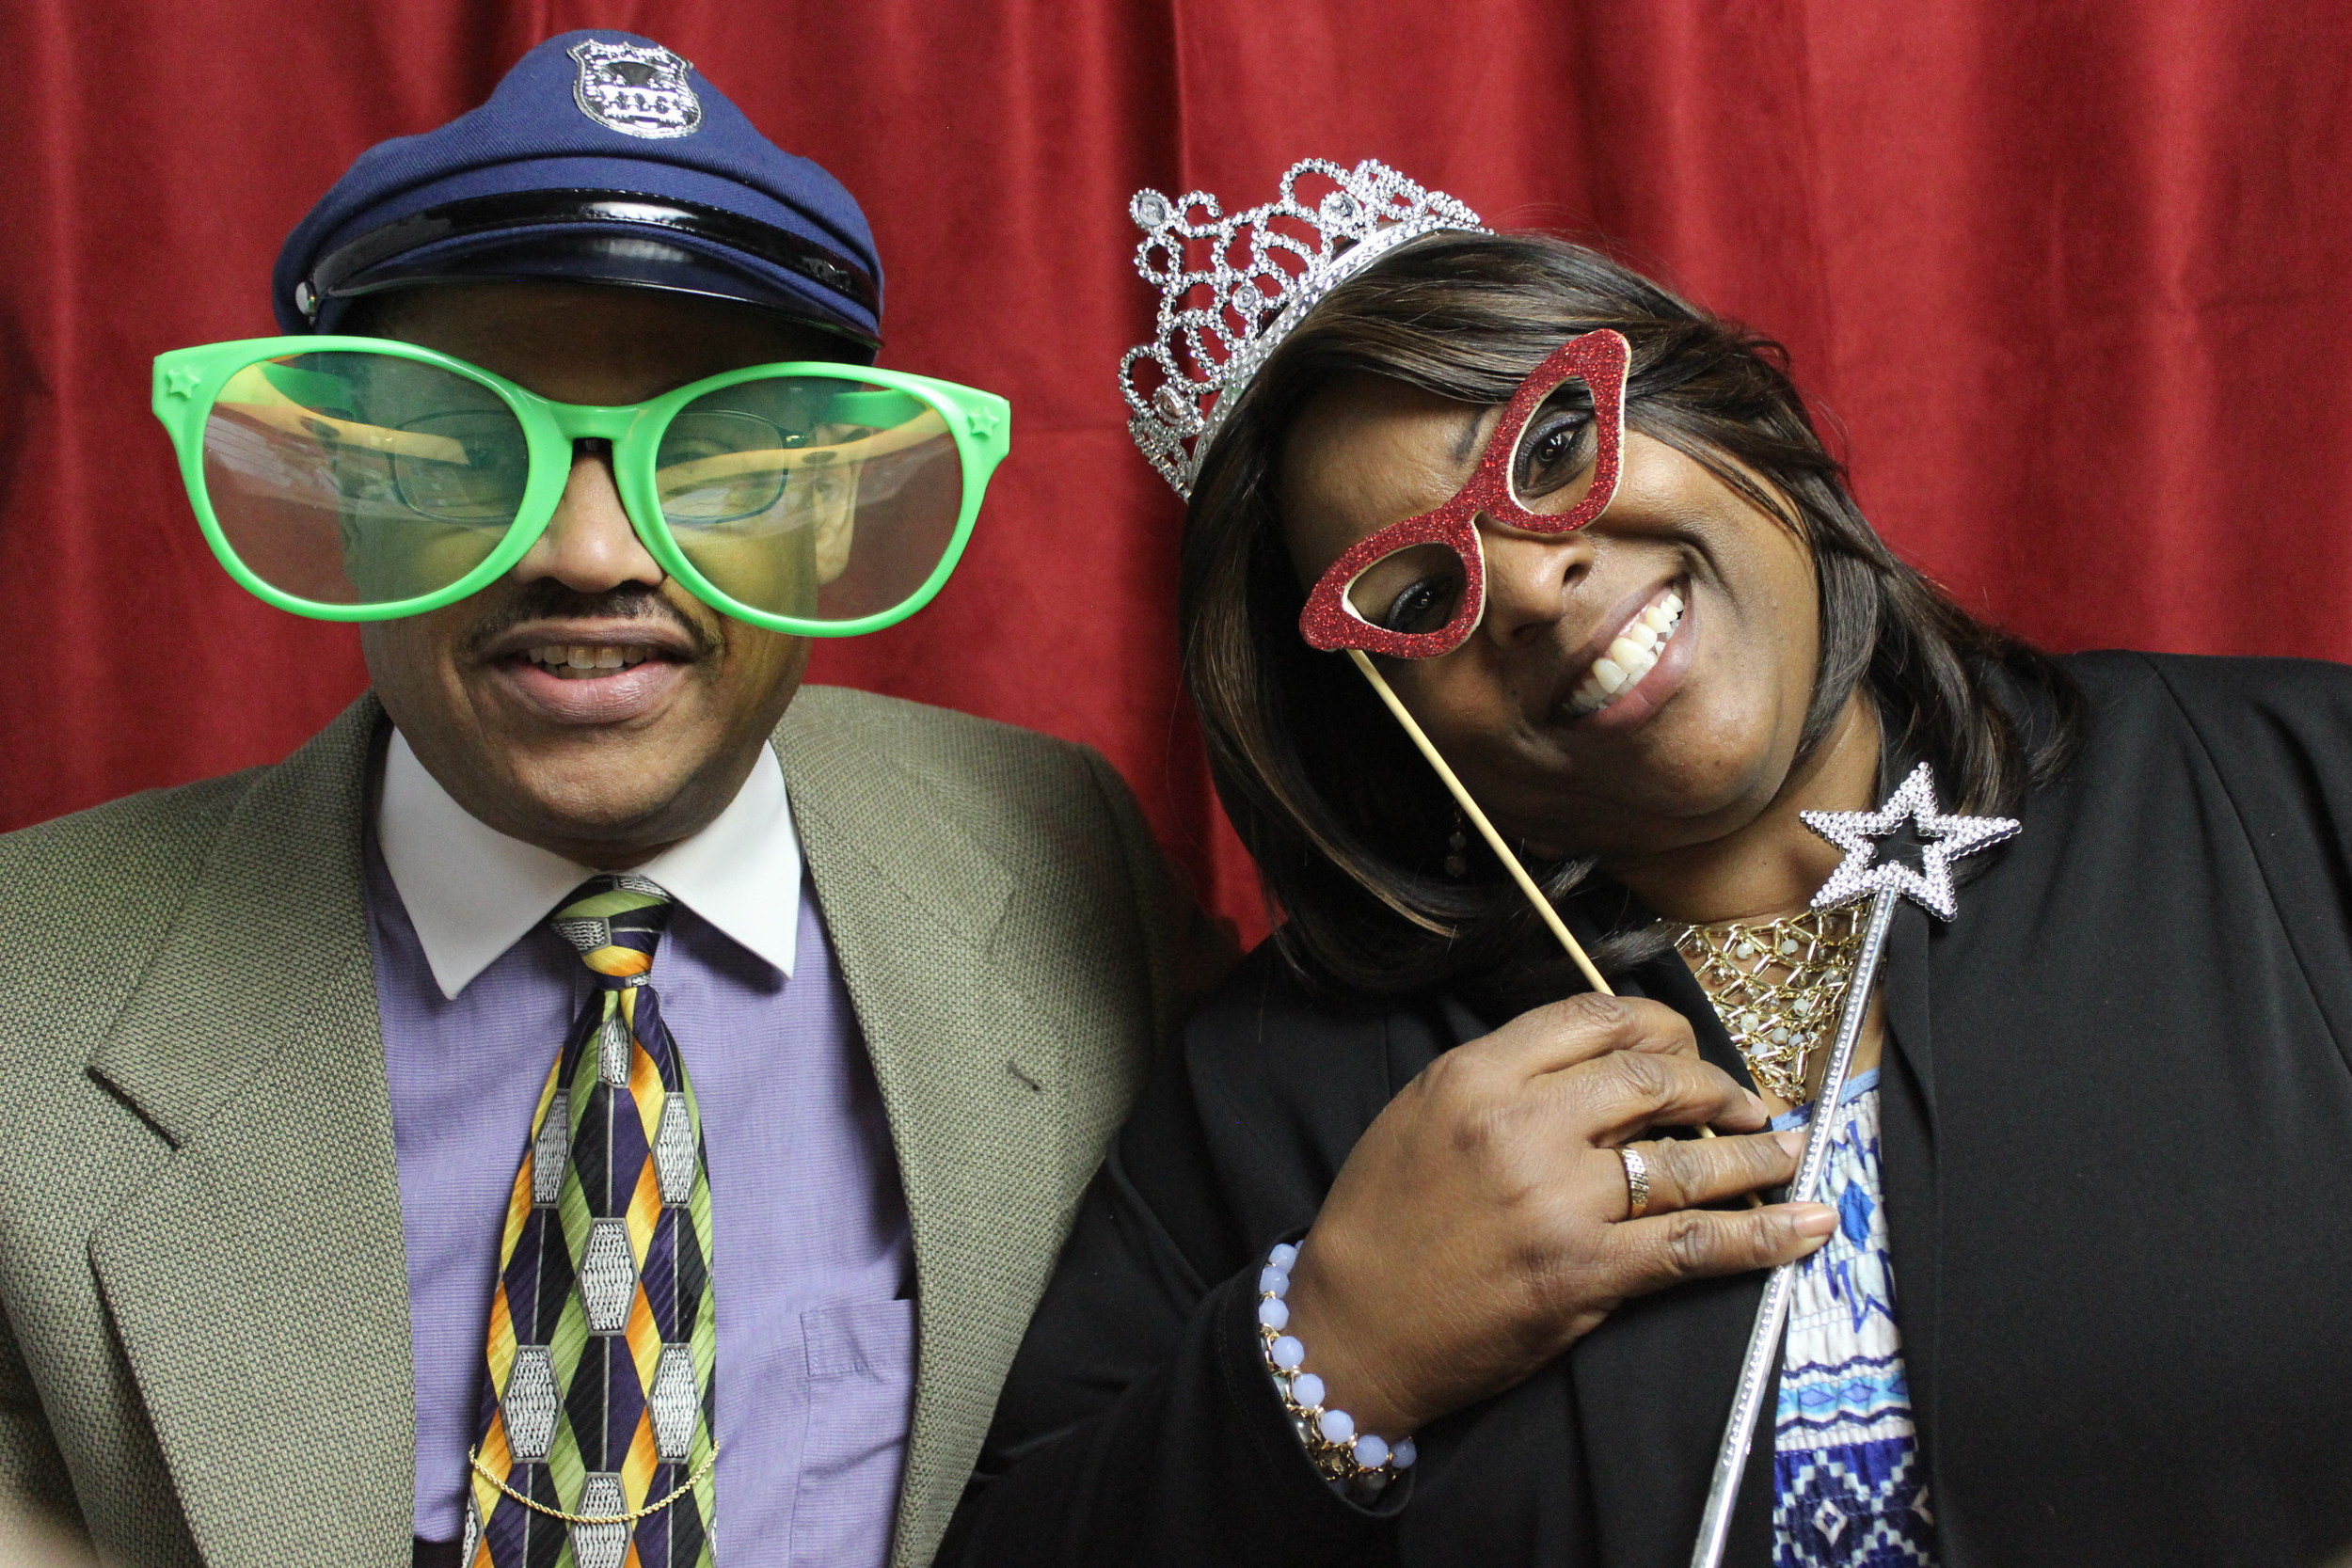 Ann-Marie & Maurice Photo Booth Wedding (223).jpg